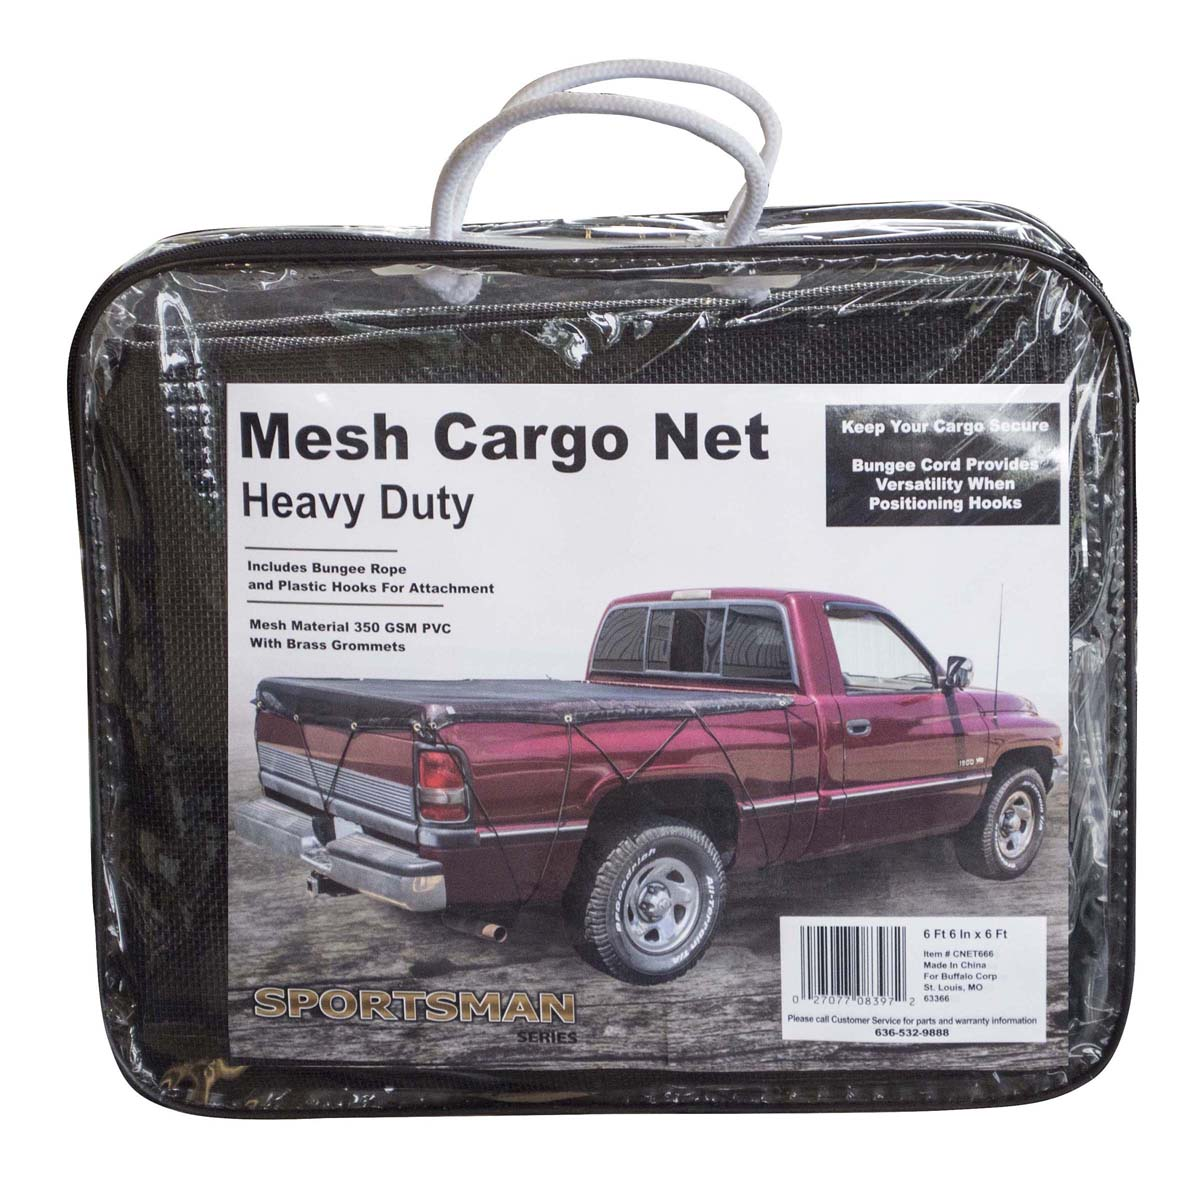 Heavy Duty Mesh Truck Bed Cargo Net Cover 6 ft. 6 in. x 6 ft.